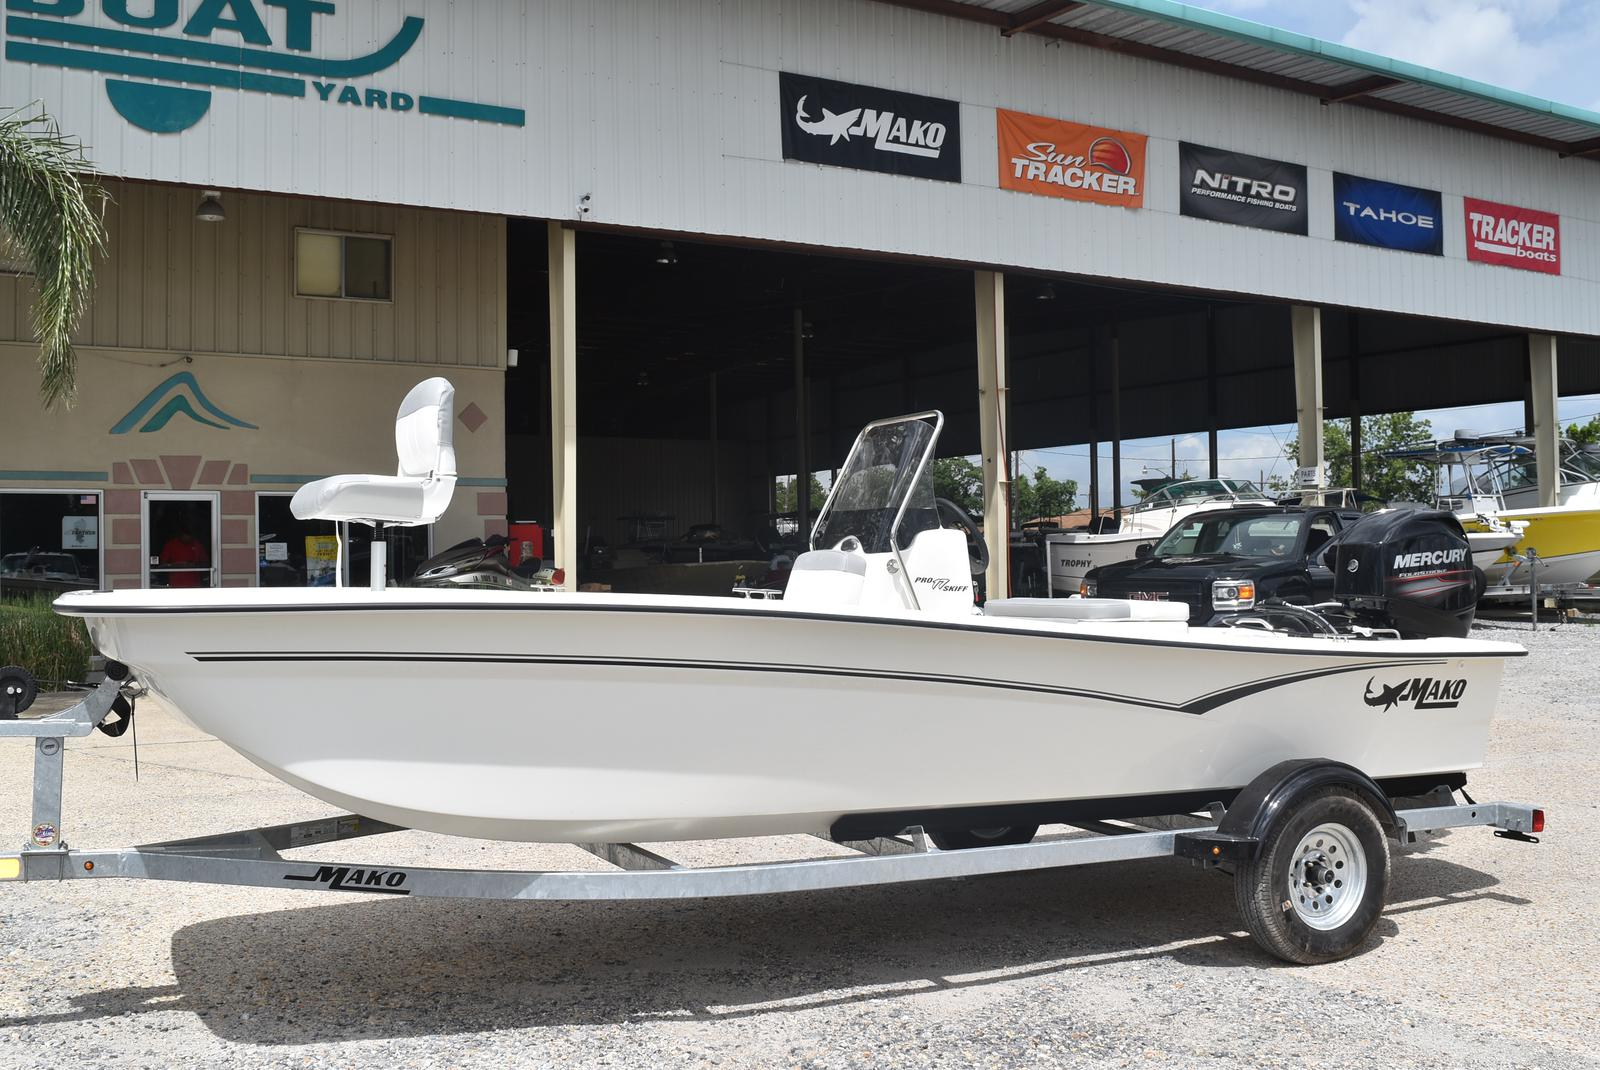 2020 Mako boat for sale, model of the boat is Pro Skiff 17, 75 ELPT & Image # 135 of 702